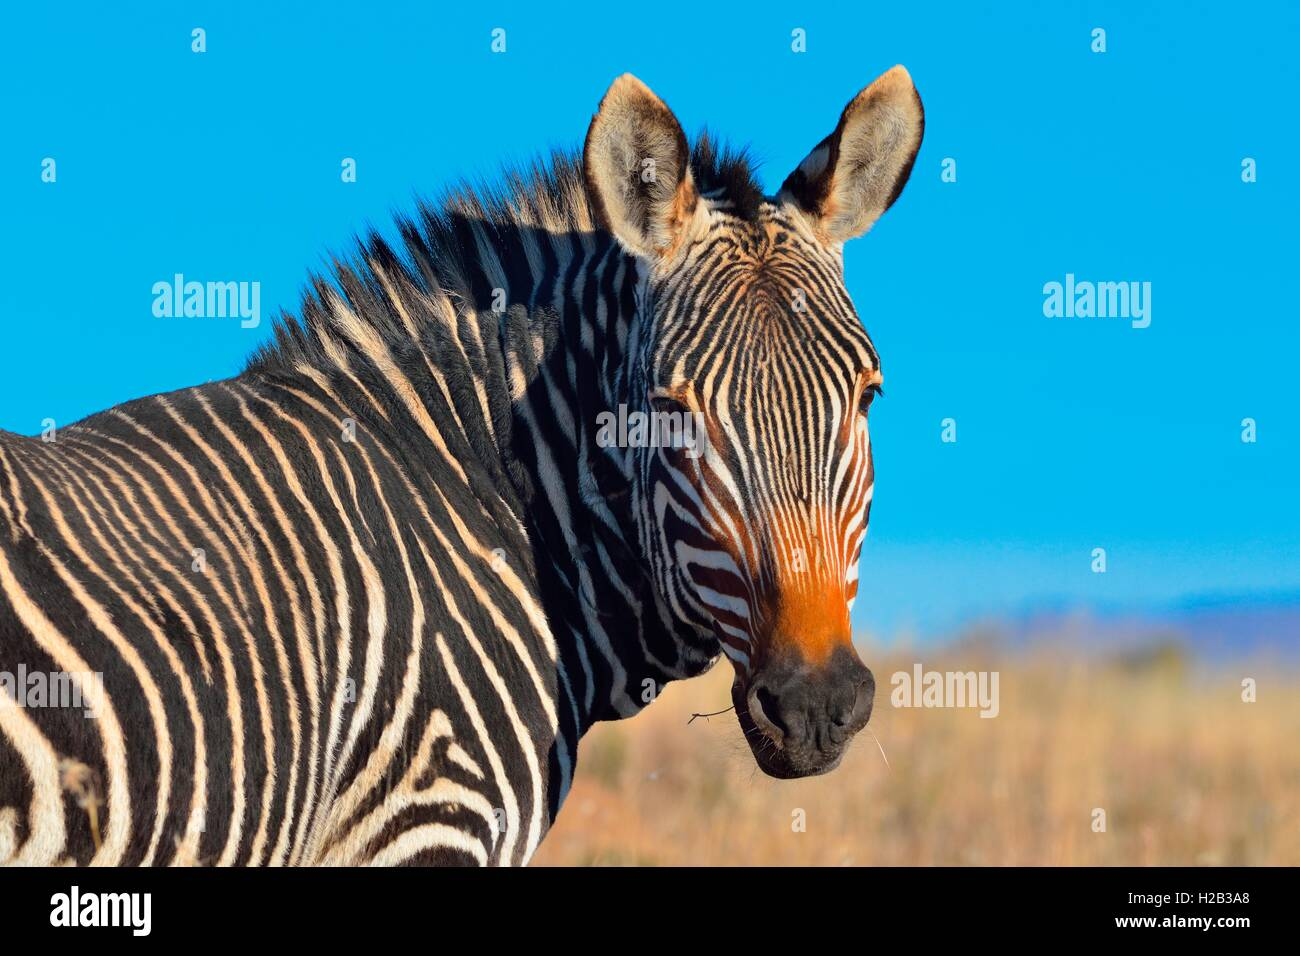 Cape Mountain Zebra (Equus zebra zebra), portrait, Mountain Zebra National Park, Eastern Cape, South Africa, Africa - Stock Image